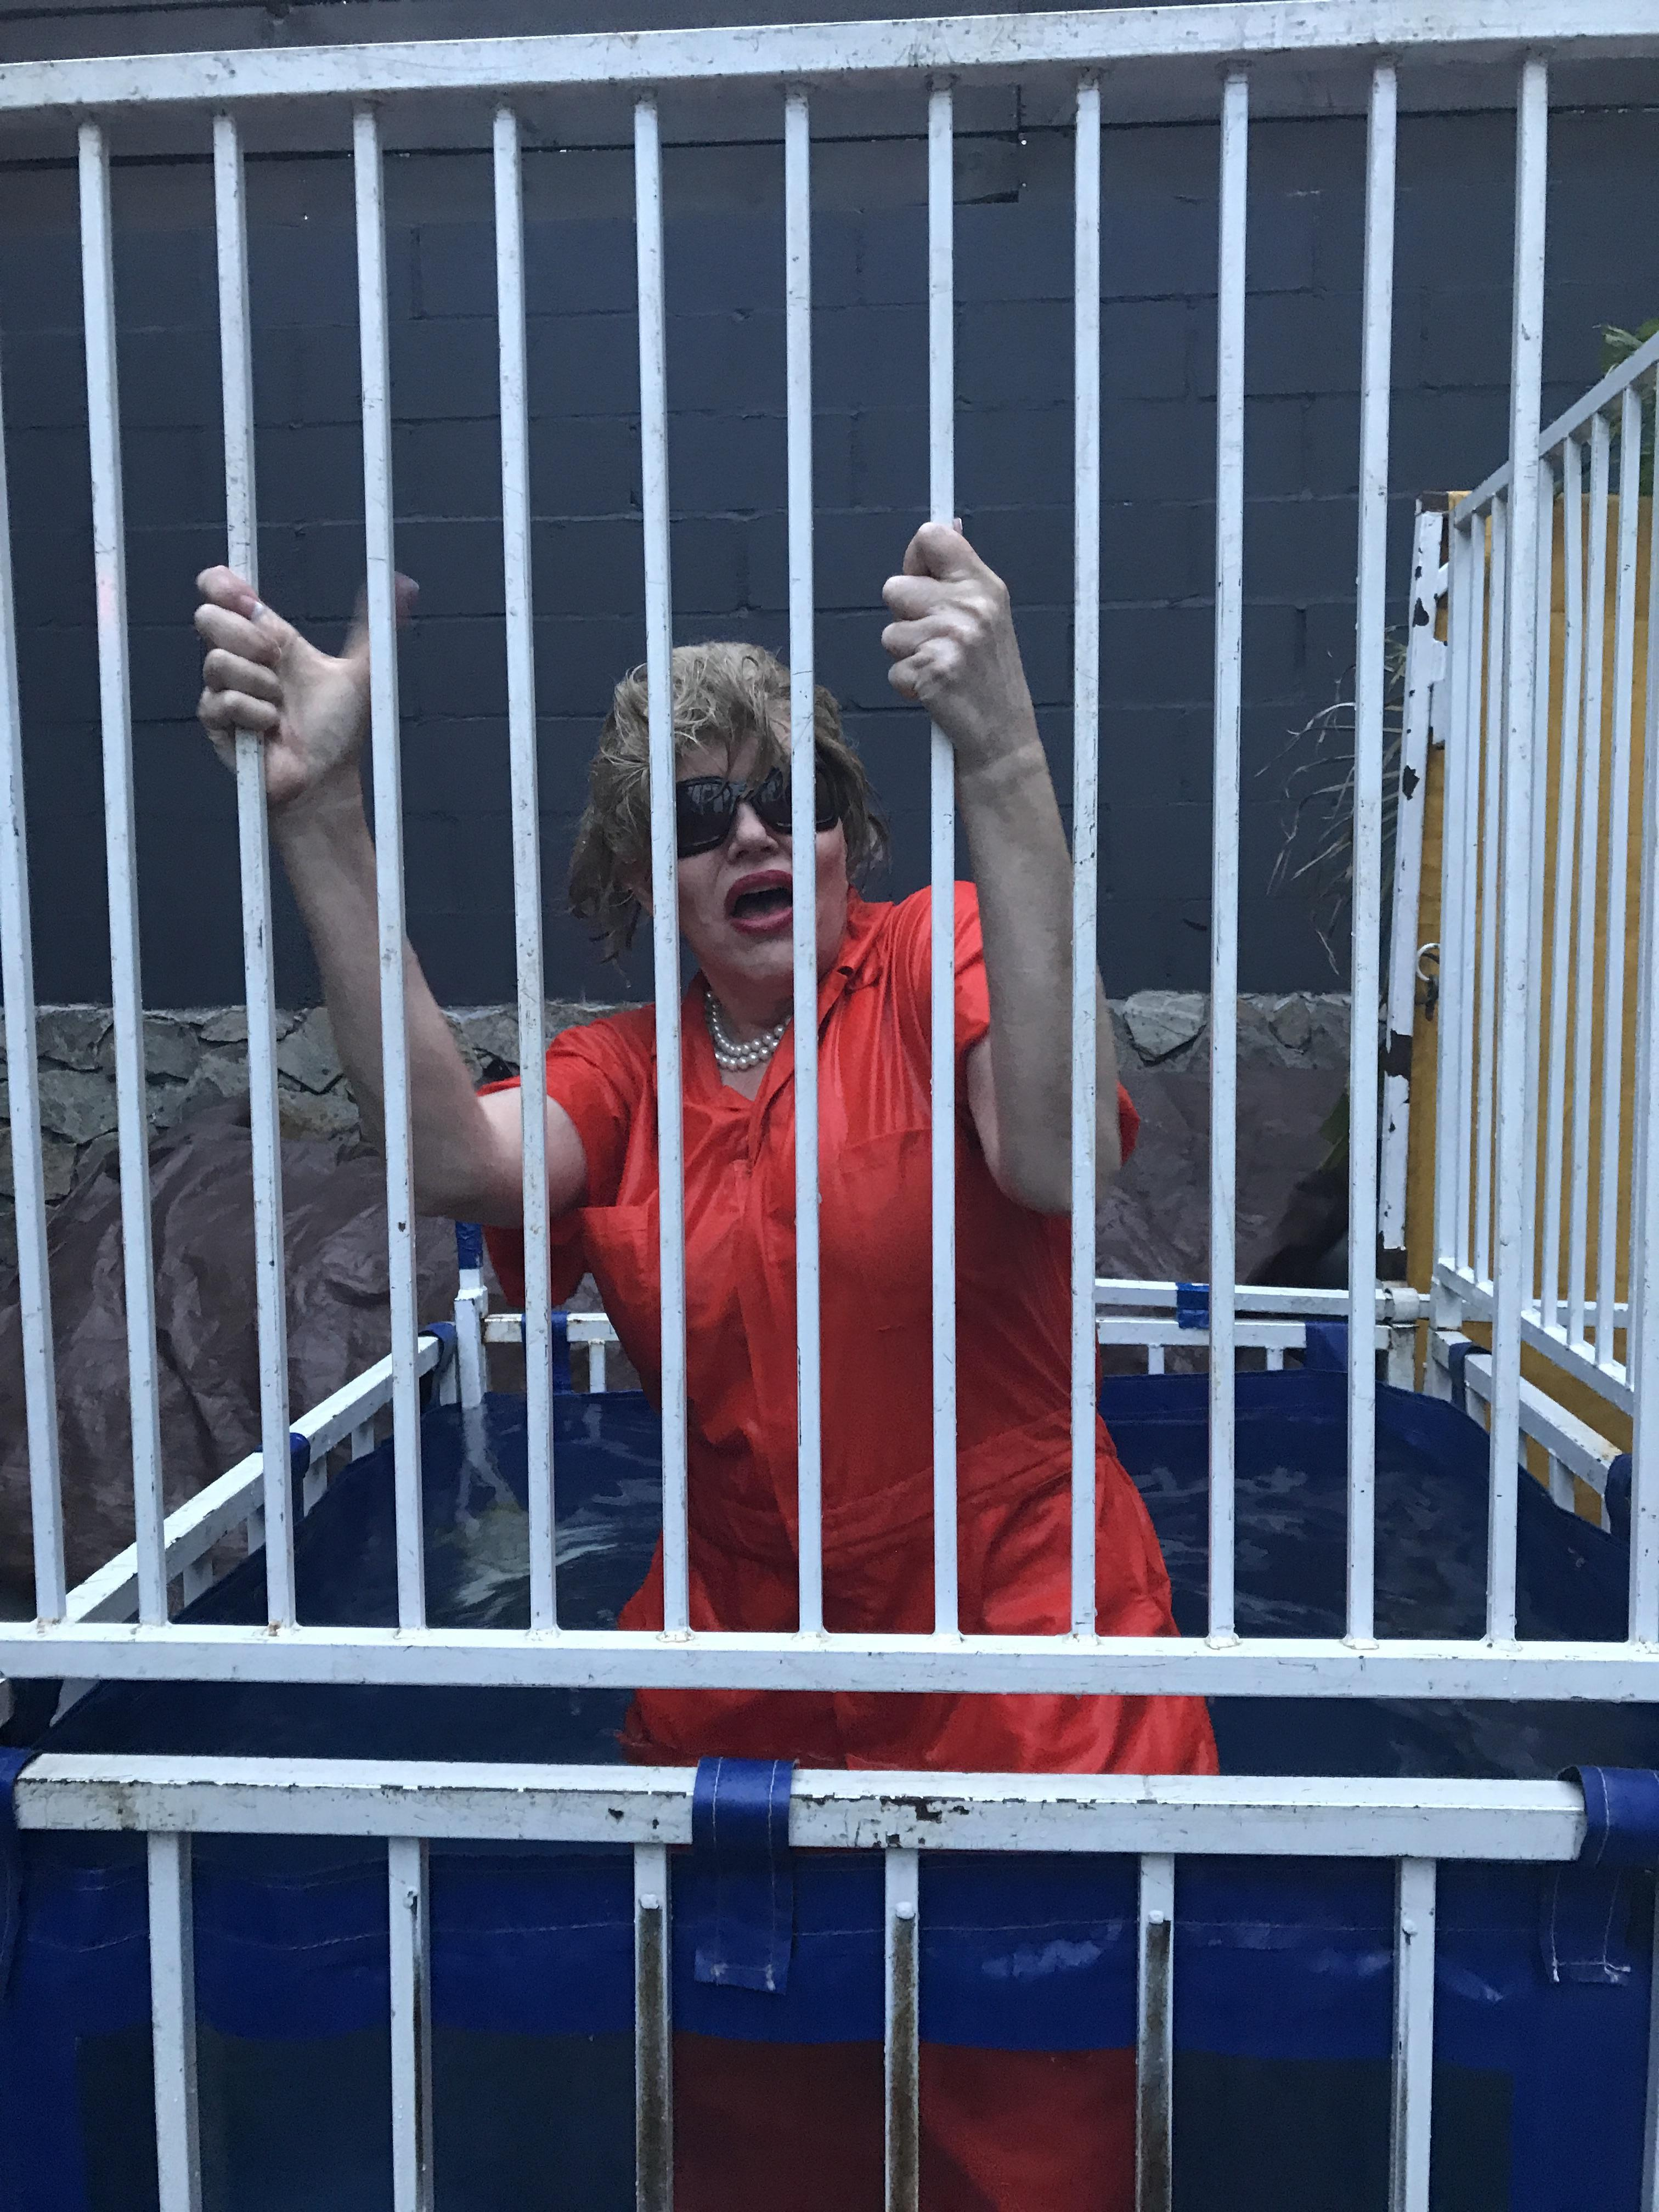 'Hillary Clinton' after getting sank in the dunk tank